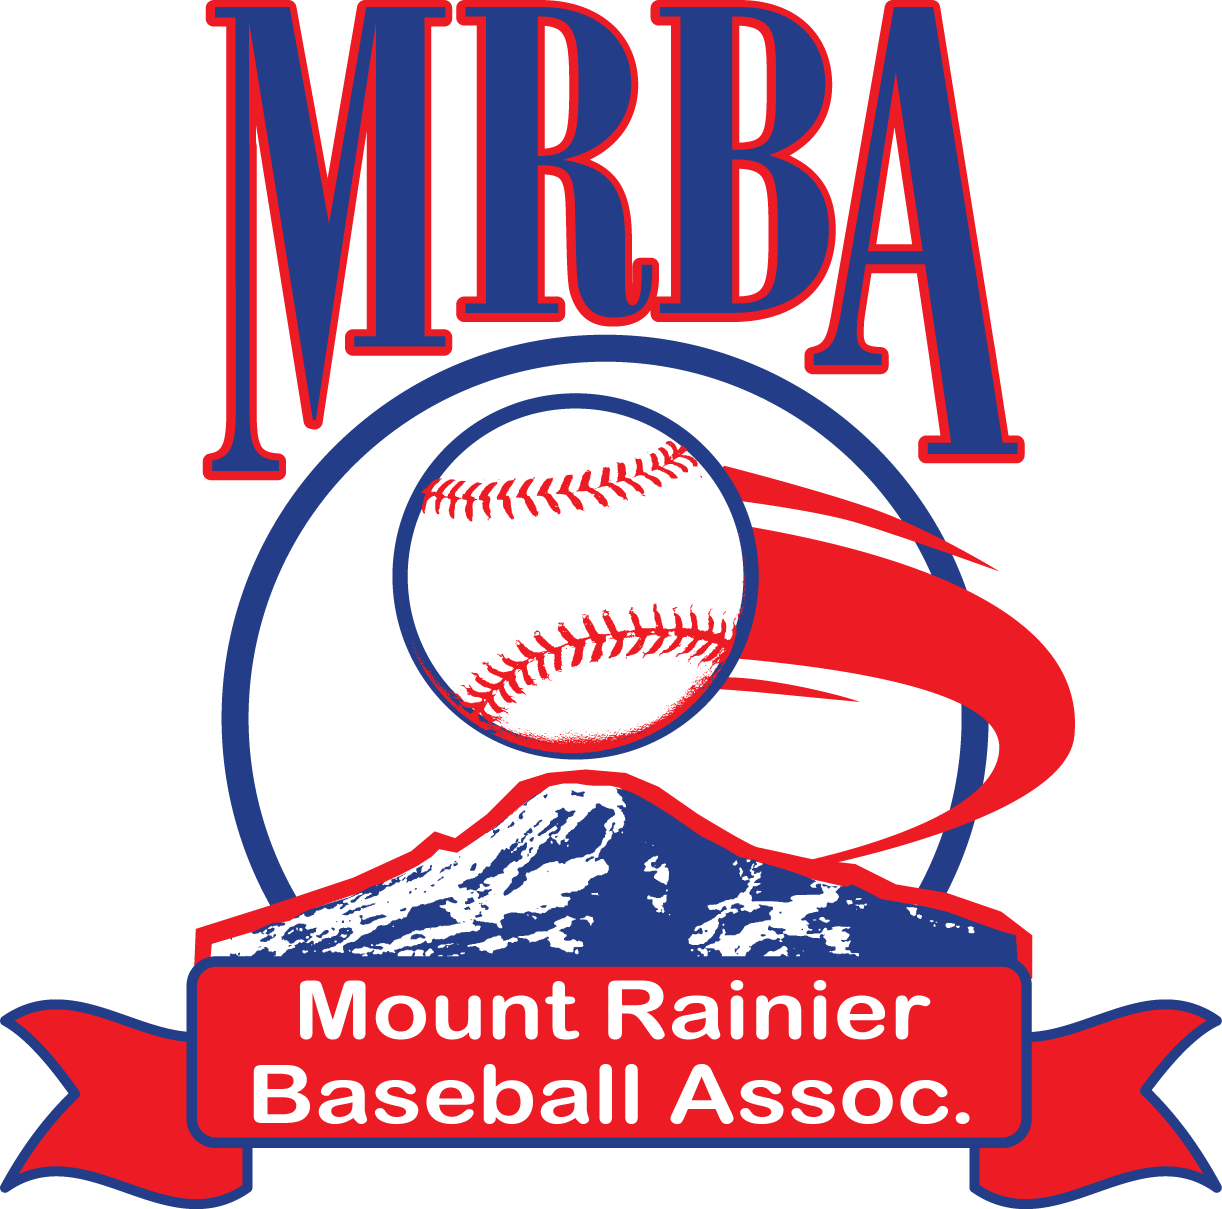 Mt. Rainier Baseball Association - Cal Ripken League